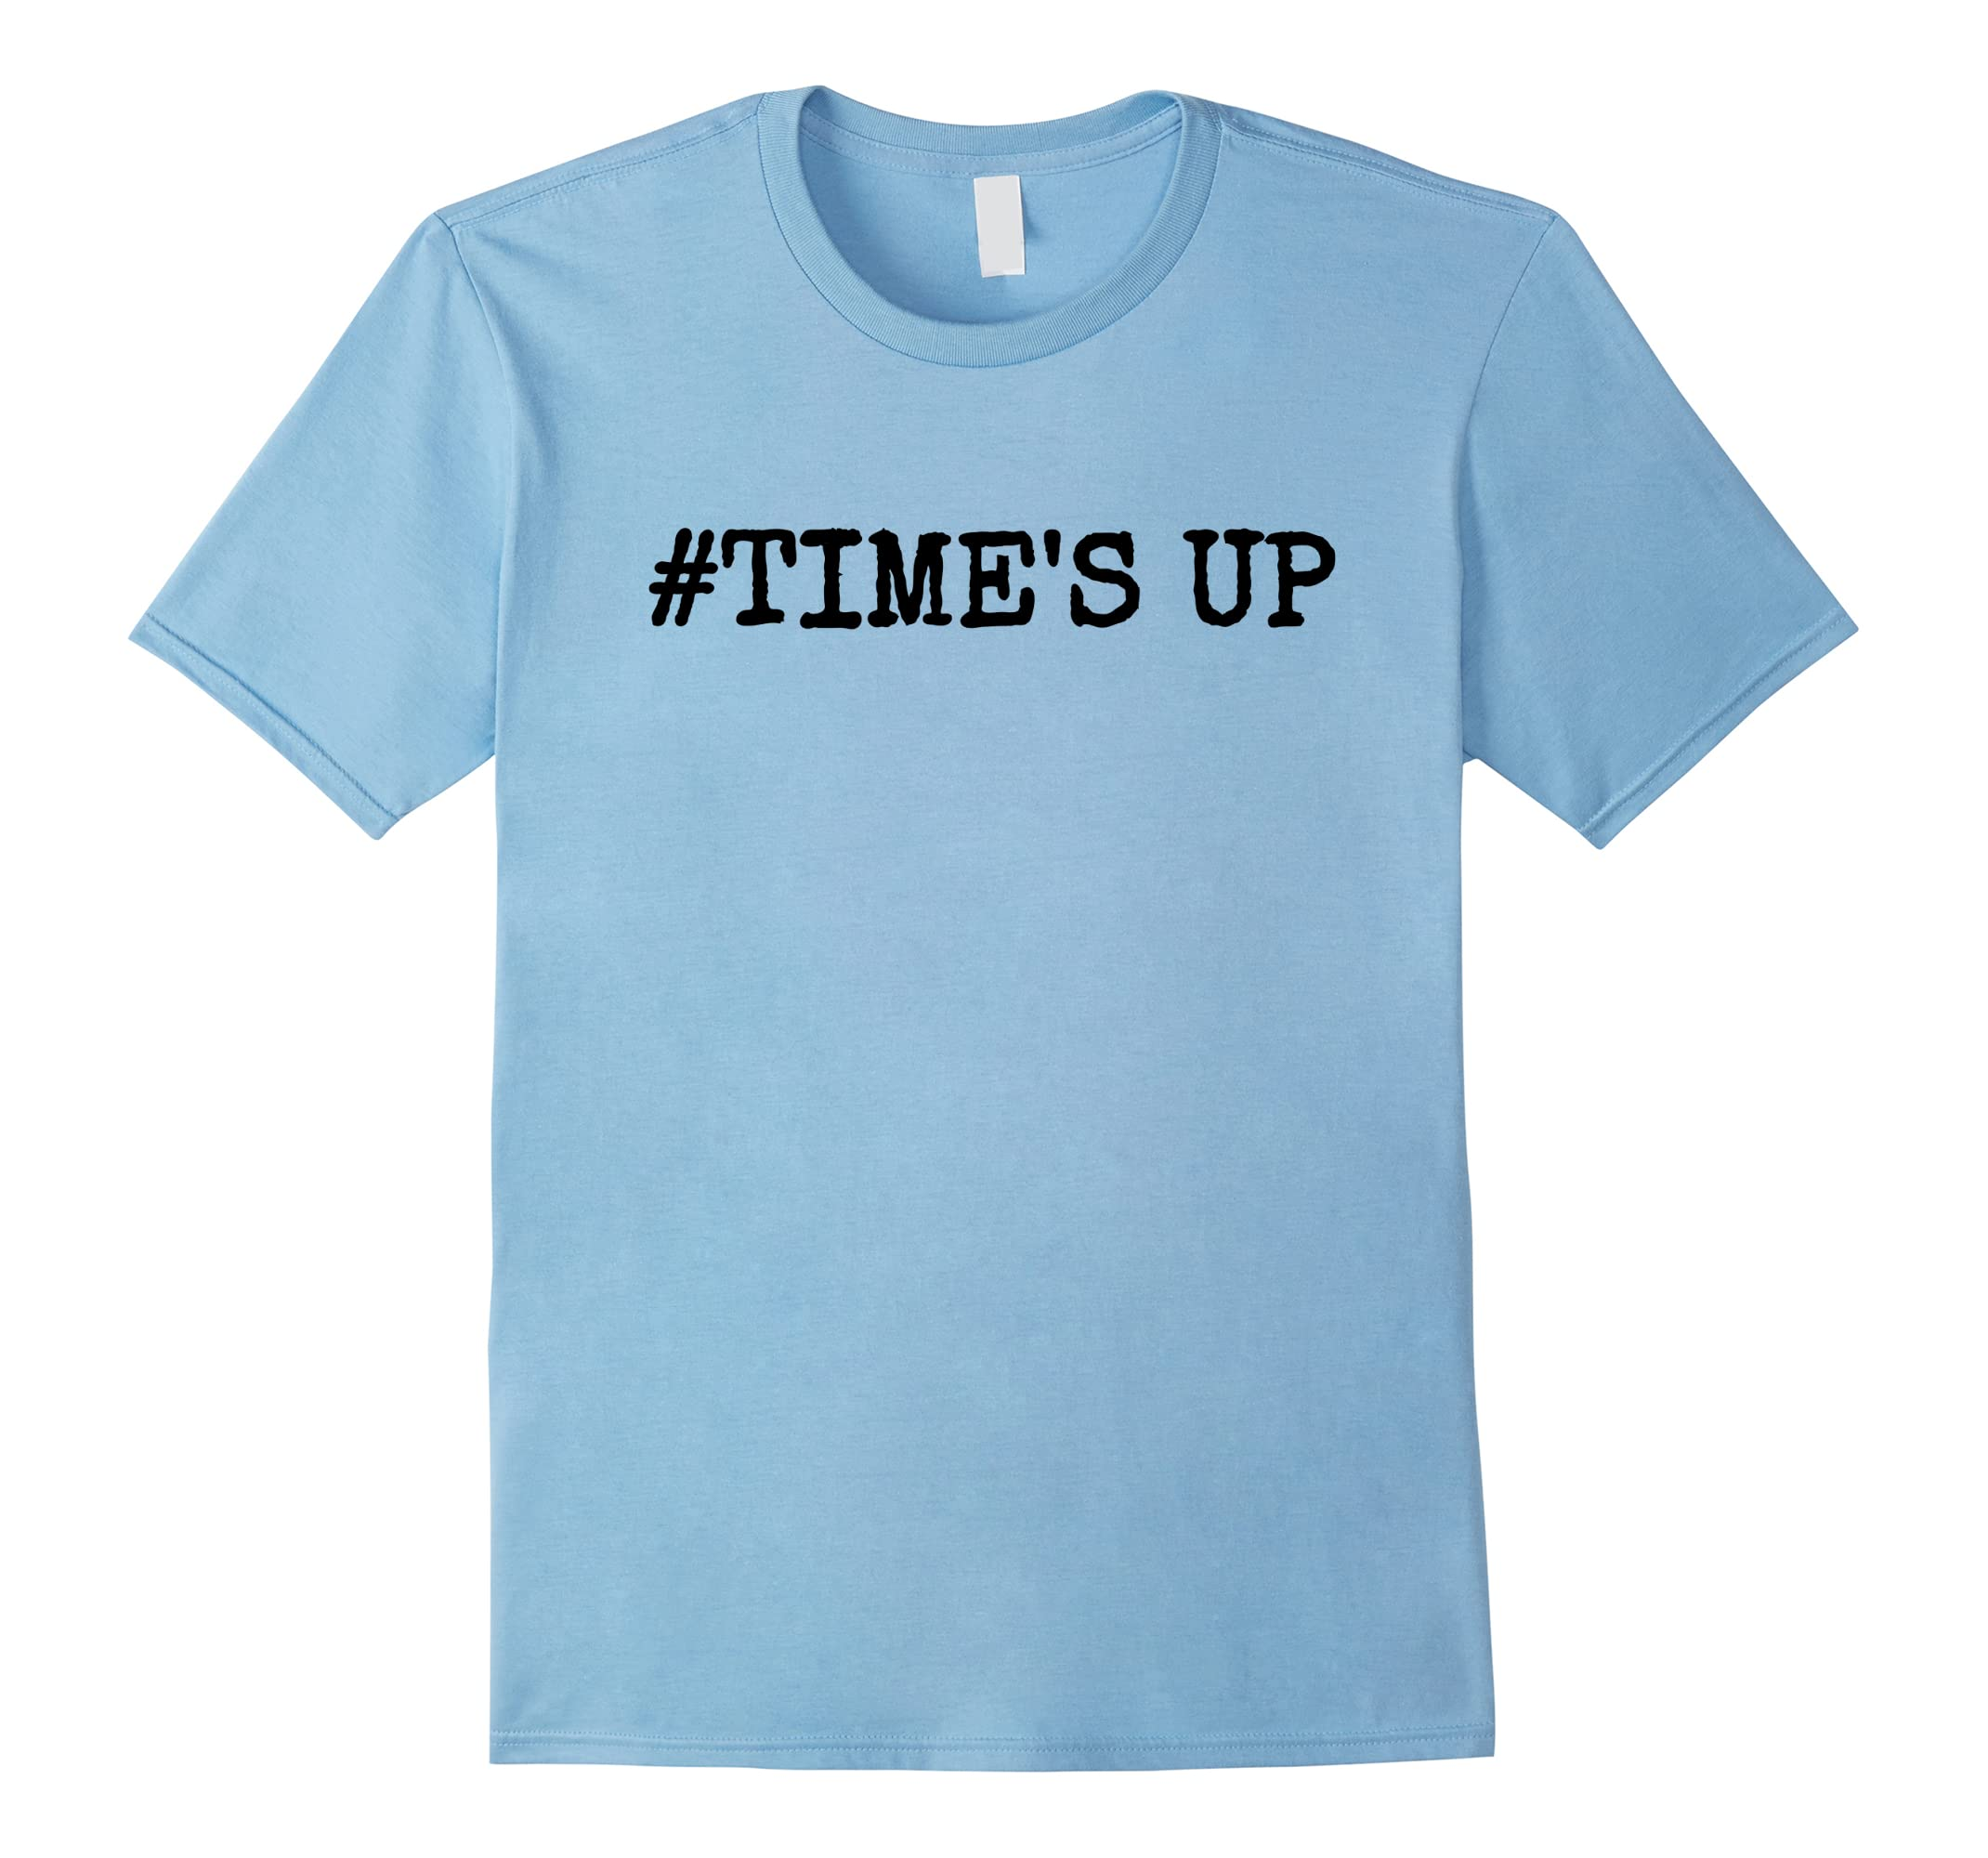 #TIME'S UP Shirt For Awareness Against Harassment-ah my shirt one gift